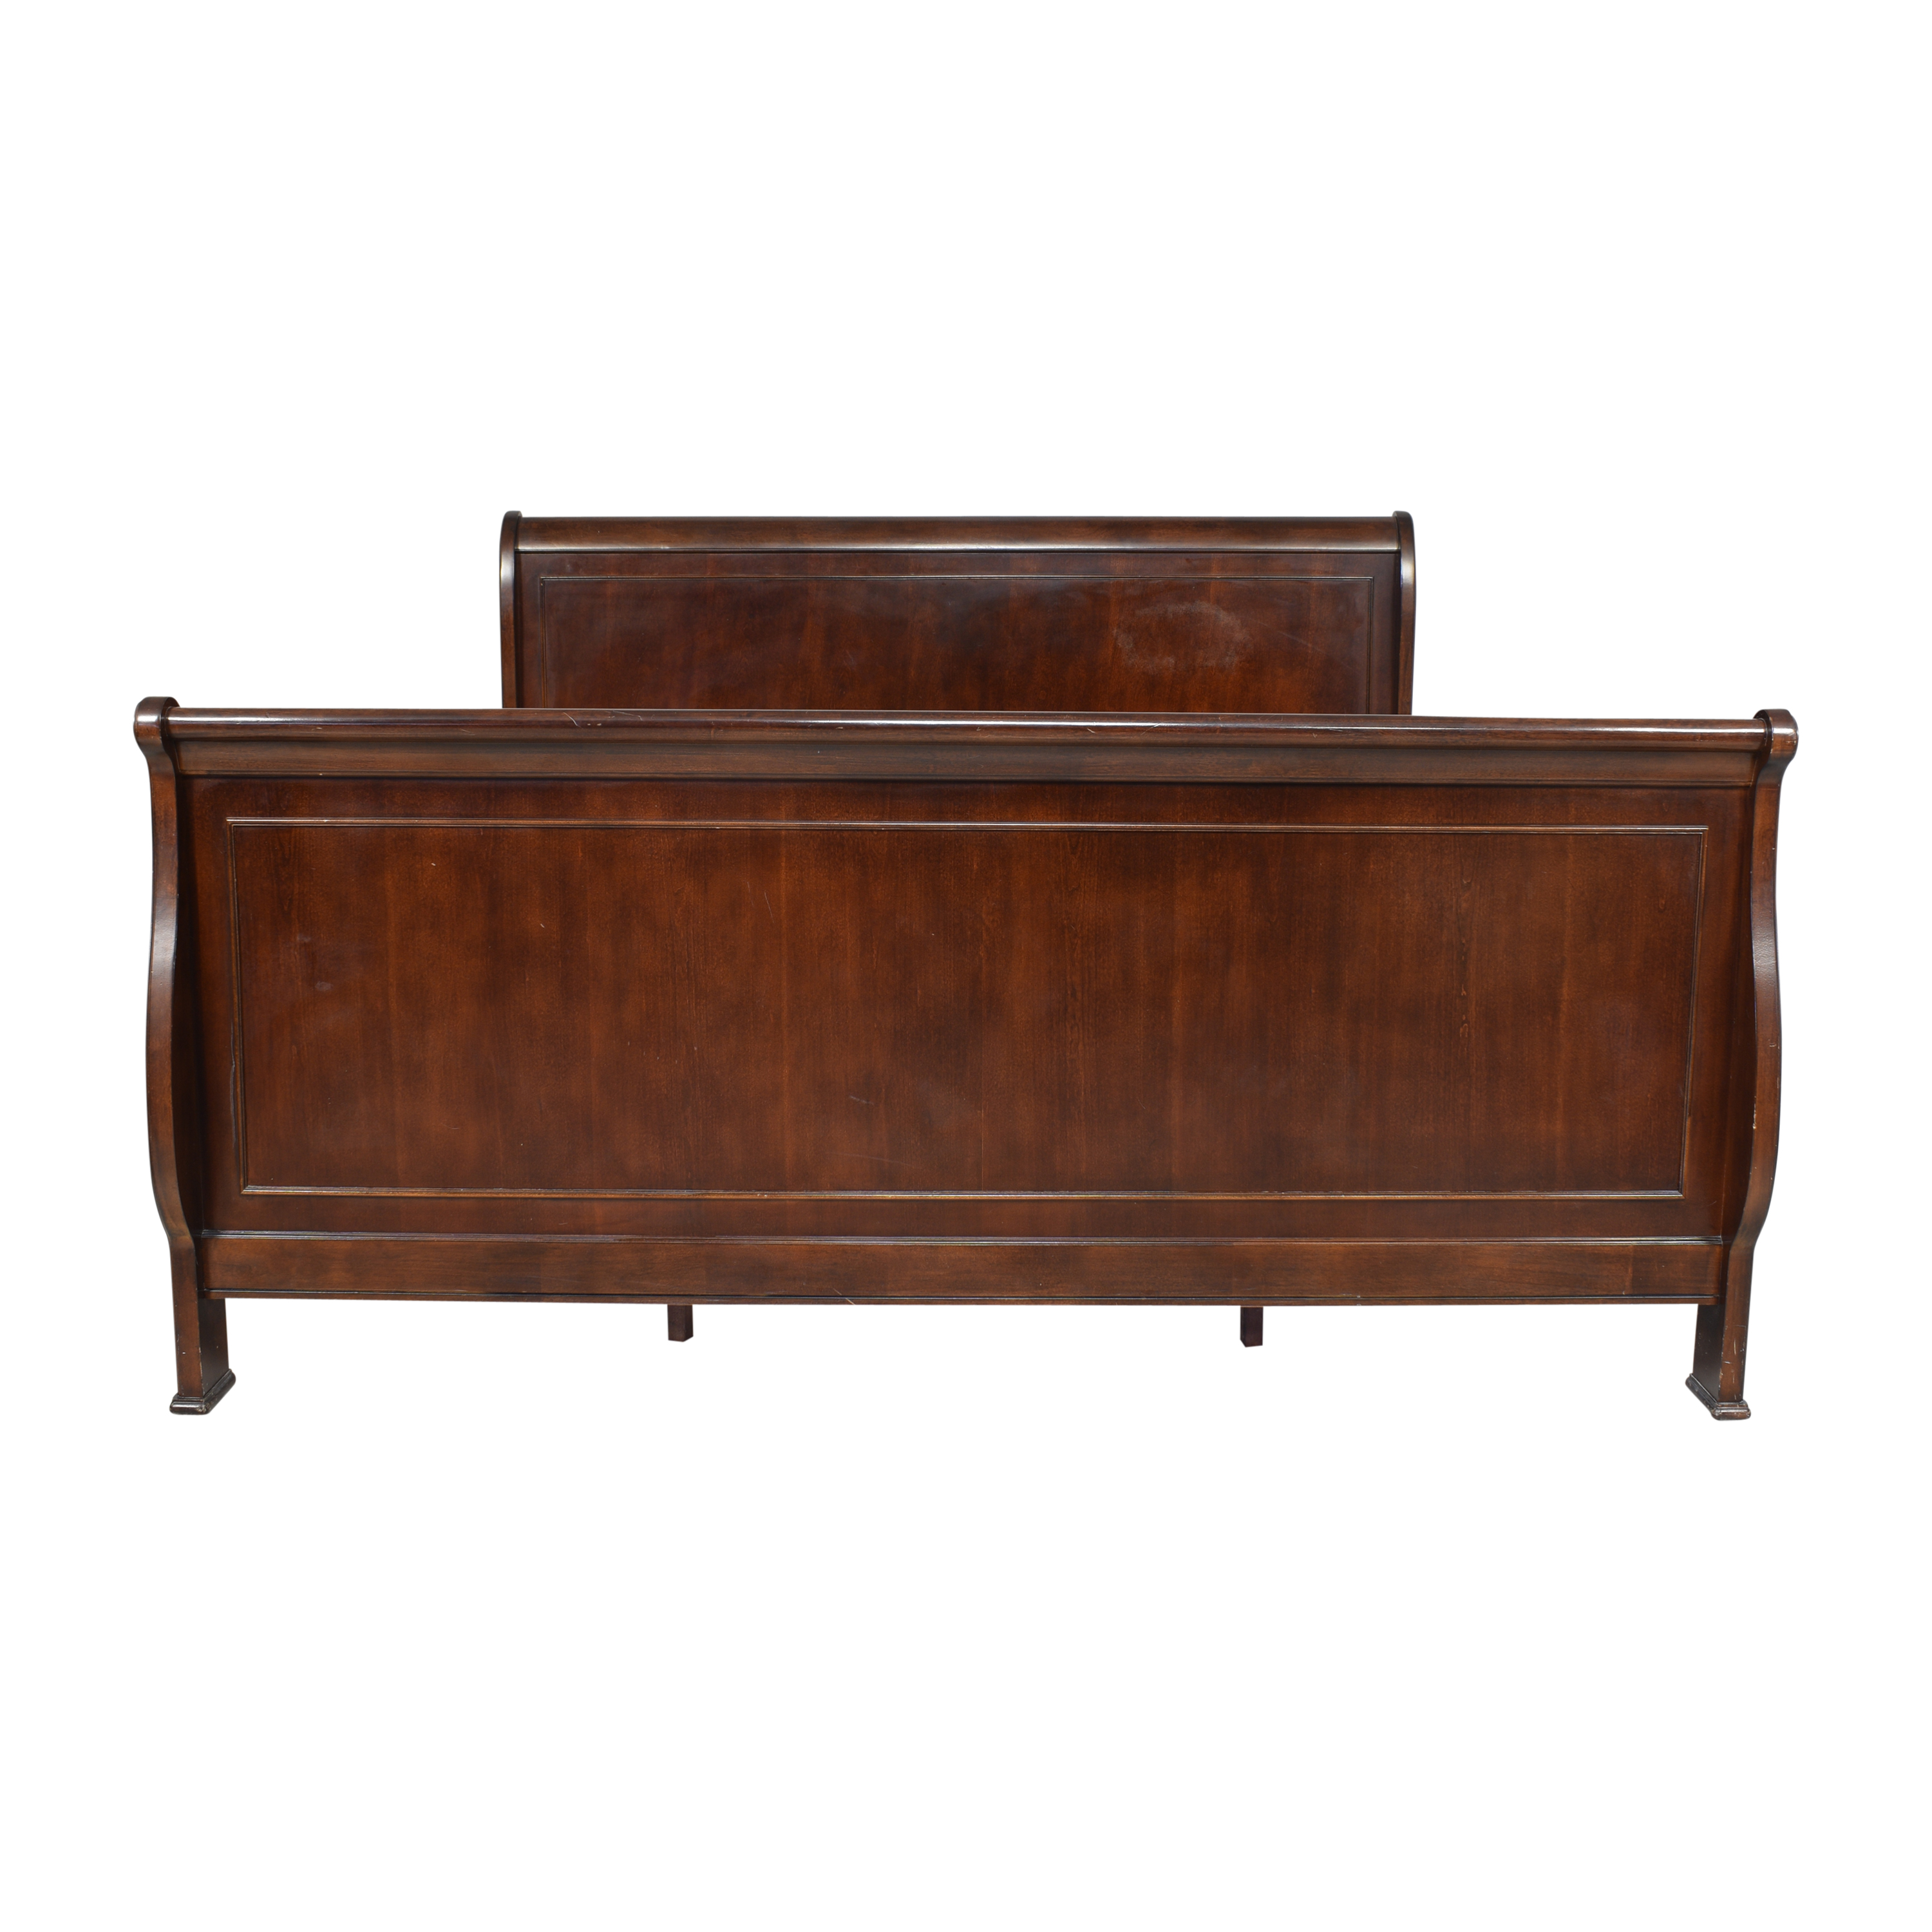 shop Havertys Orleans King Sleigh Bed Havertys Bed Frames